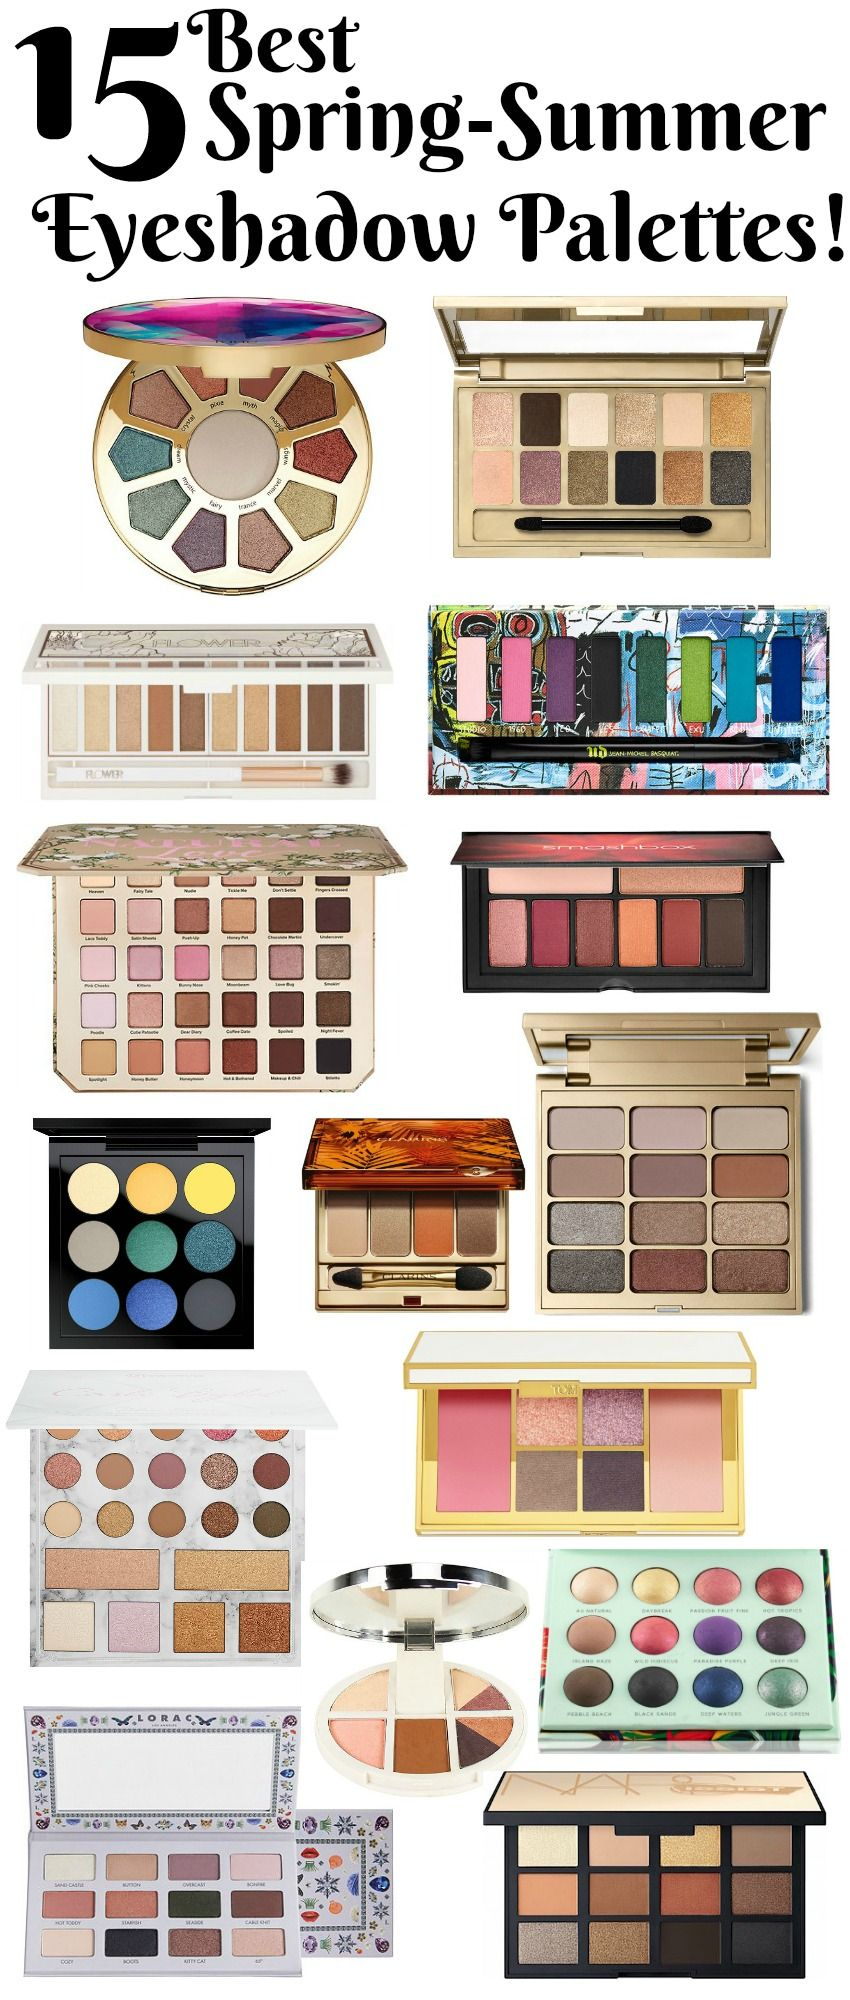 The Must Have List Best Spring Summer Eyeshadow Palettes Beauty411 Summer Eyeshadow Eyeshadow Eyeshadow Palette